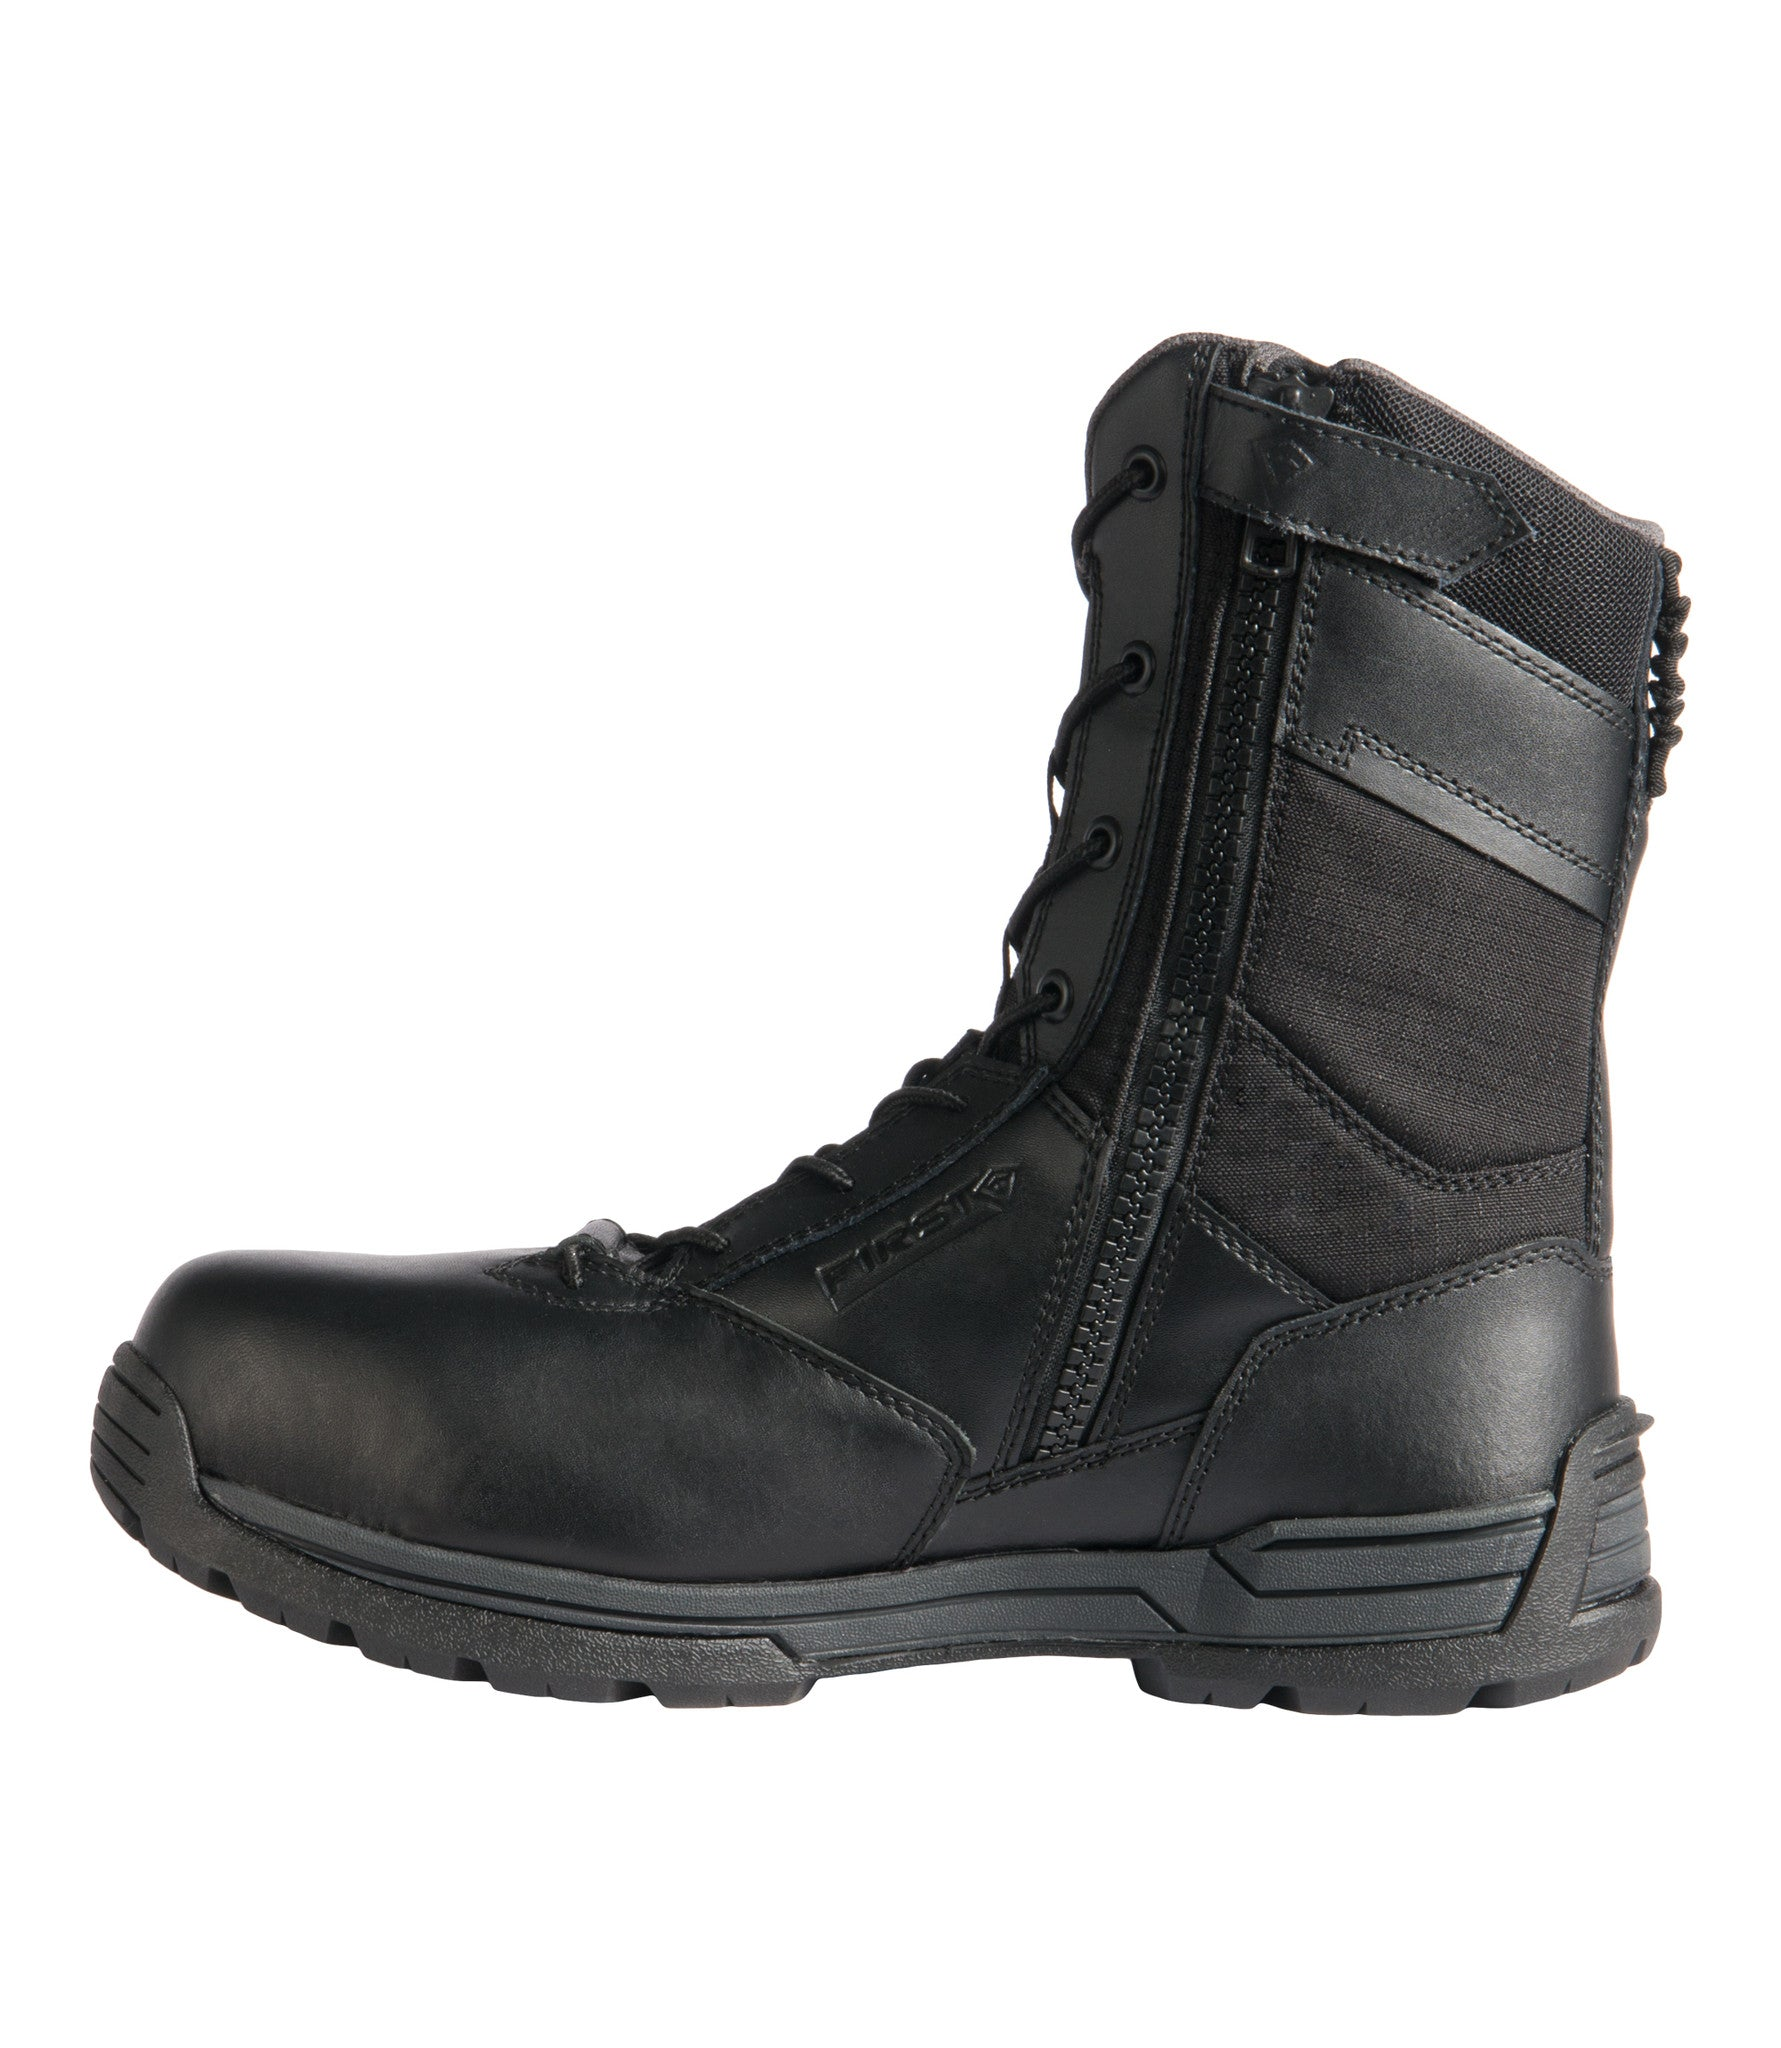 "f7a954809adf Men s 8"" Safety Toe Side Zip Duty Boot"